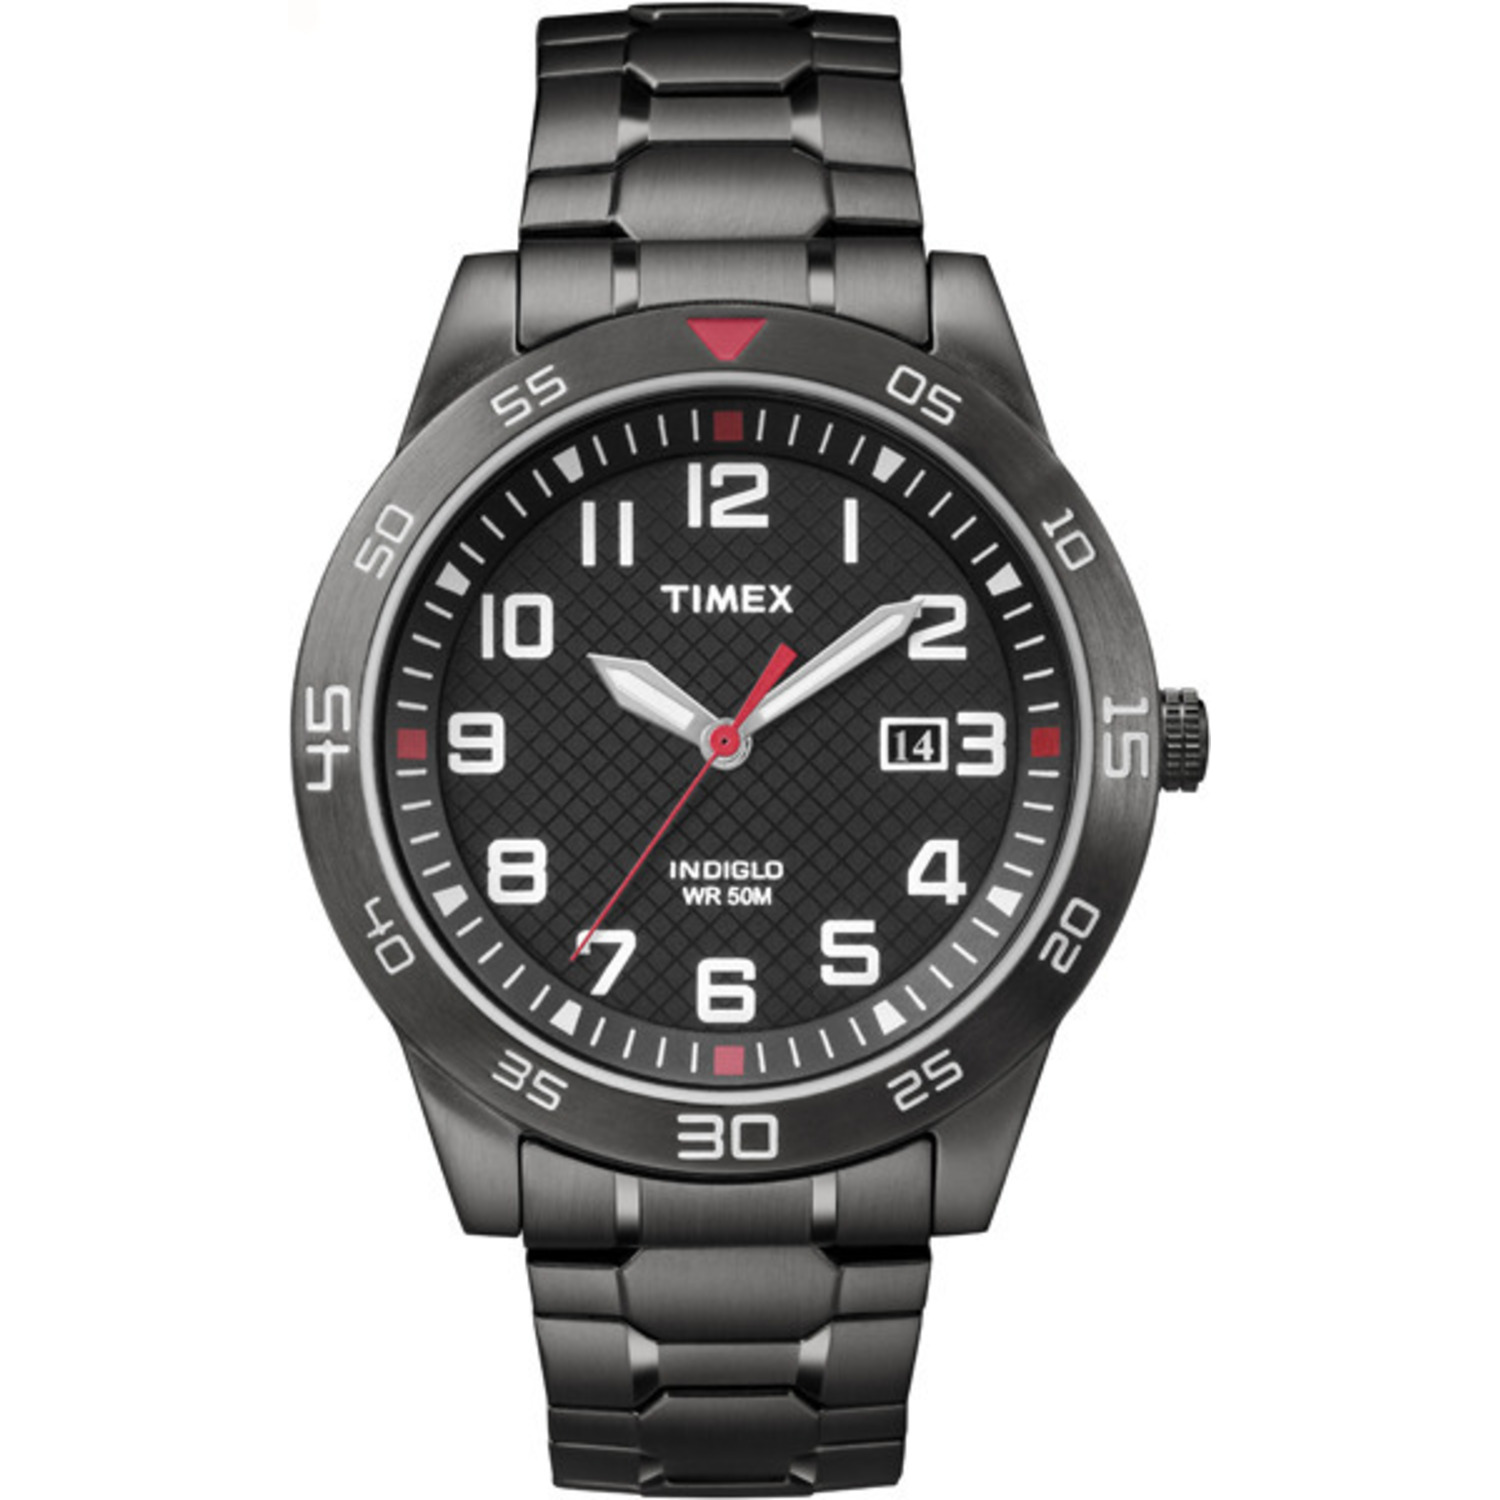 Watch casino timex station casinos buffet coupons